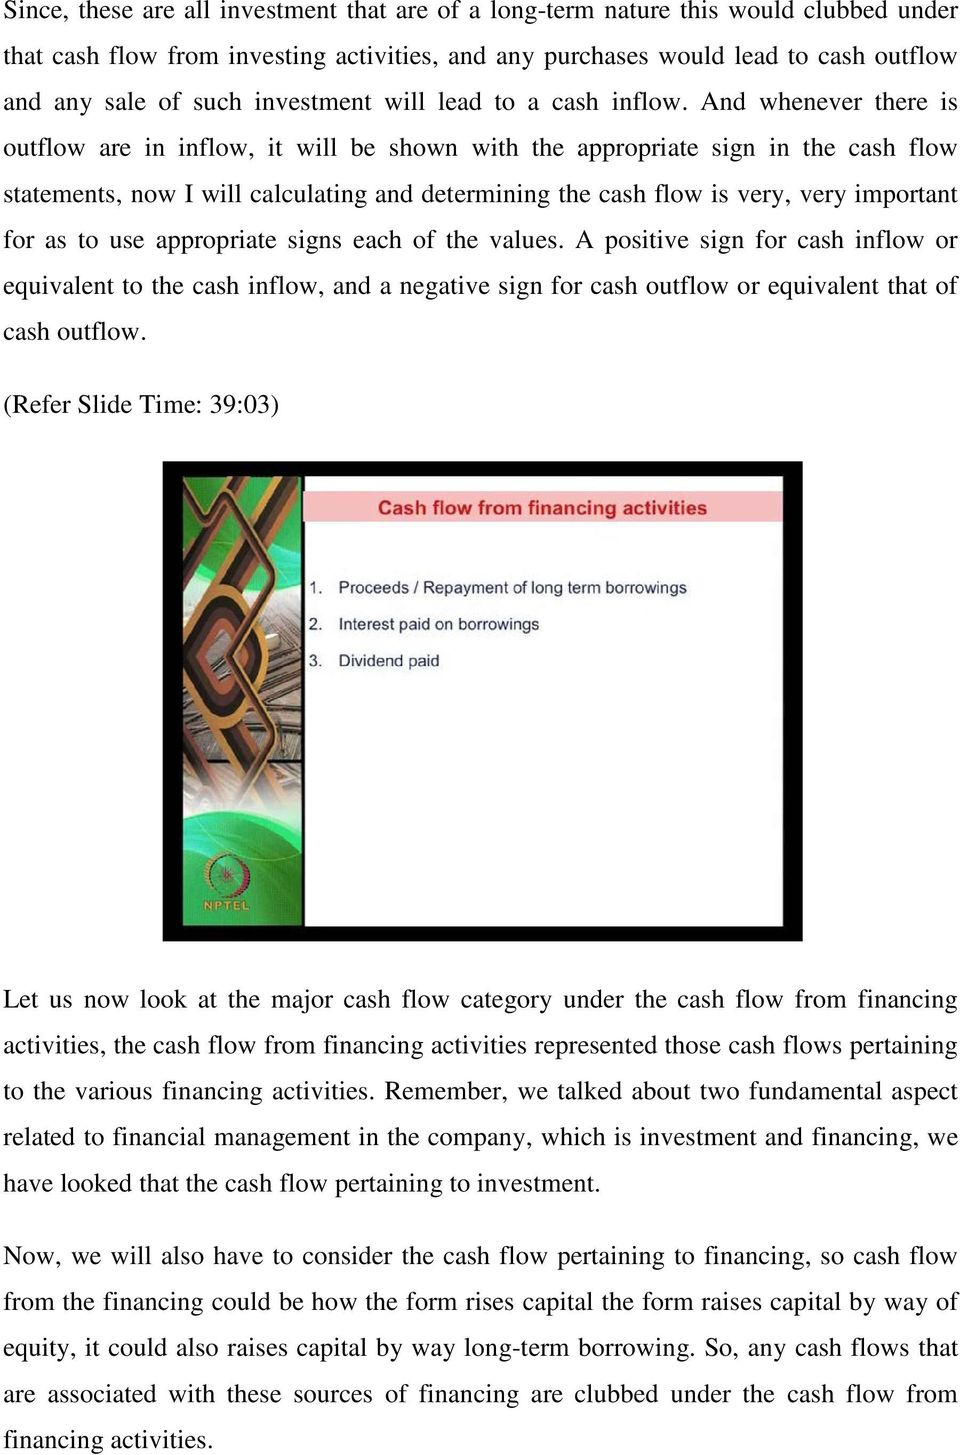 And whenever there is outflow are in inflow, it will be shown with the appropriate sign in the cash flow statements, now I will calculating and determining the cash flow is very, very important for